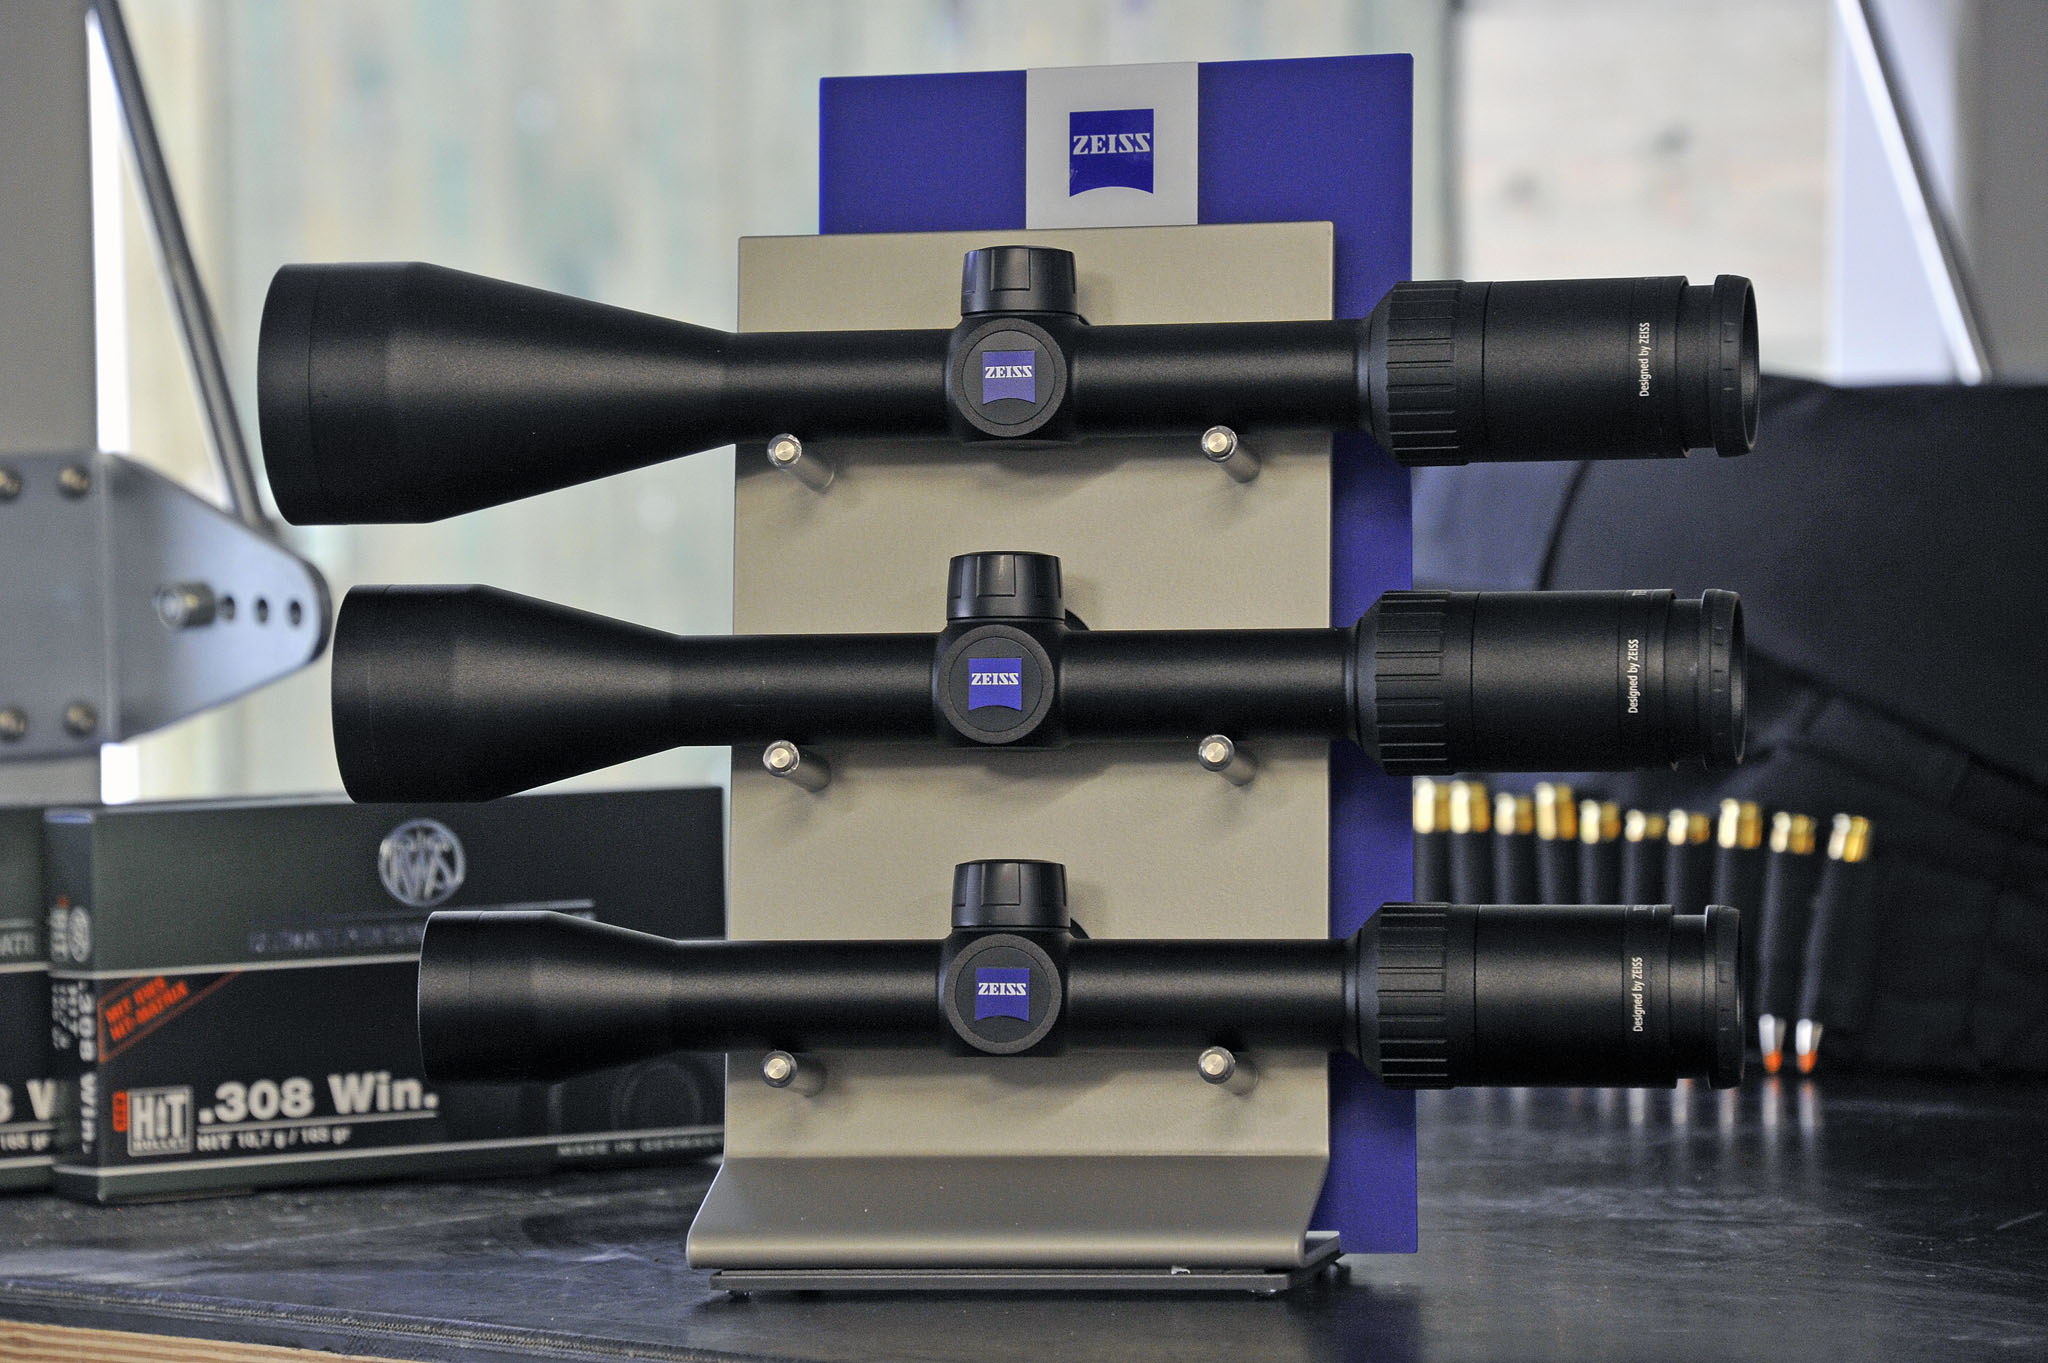 Terra X3 riflescopes by Zeiss